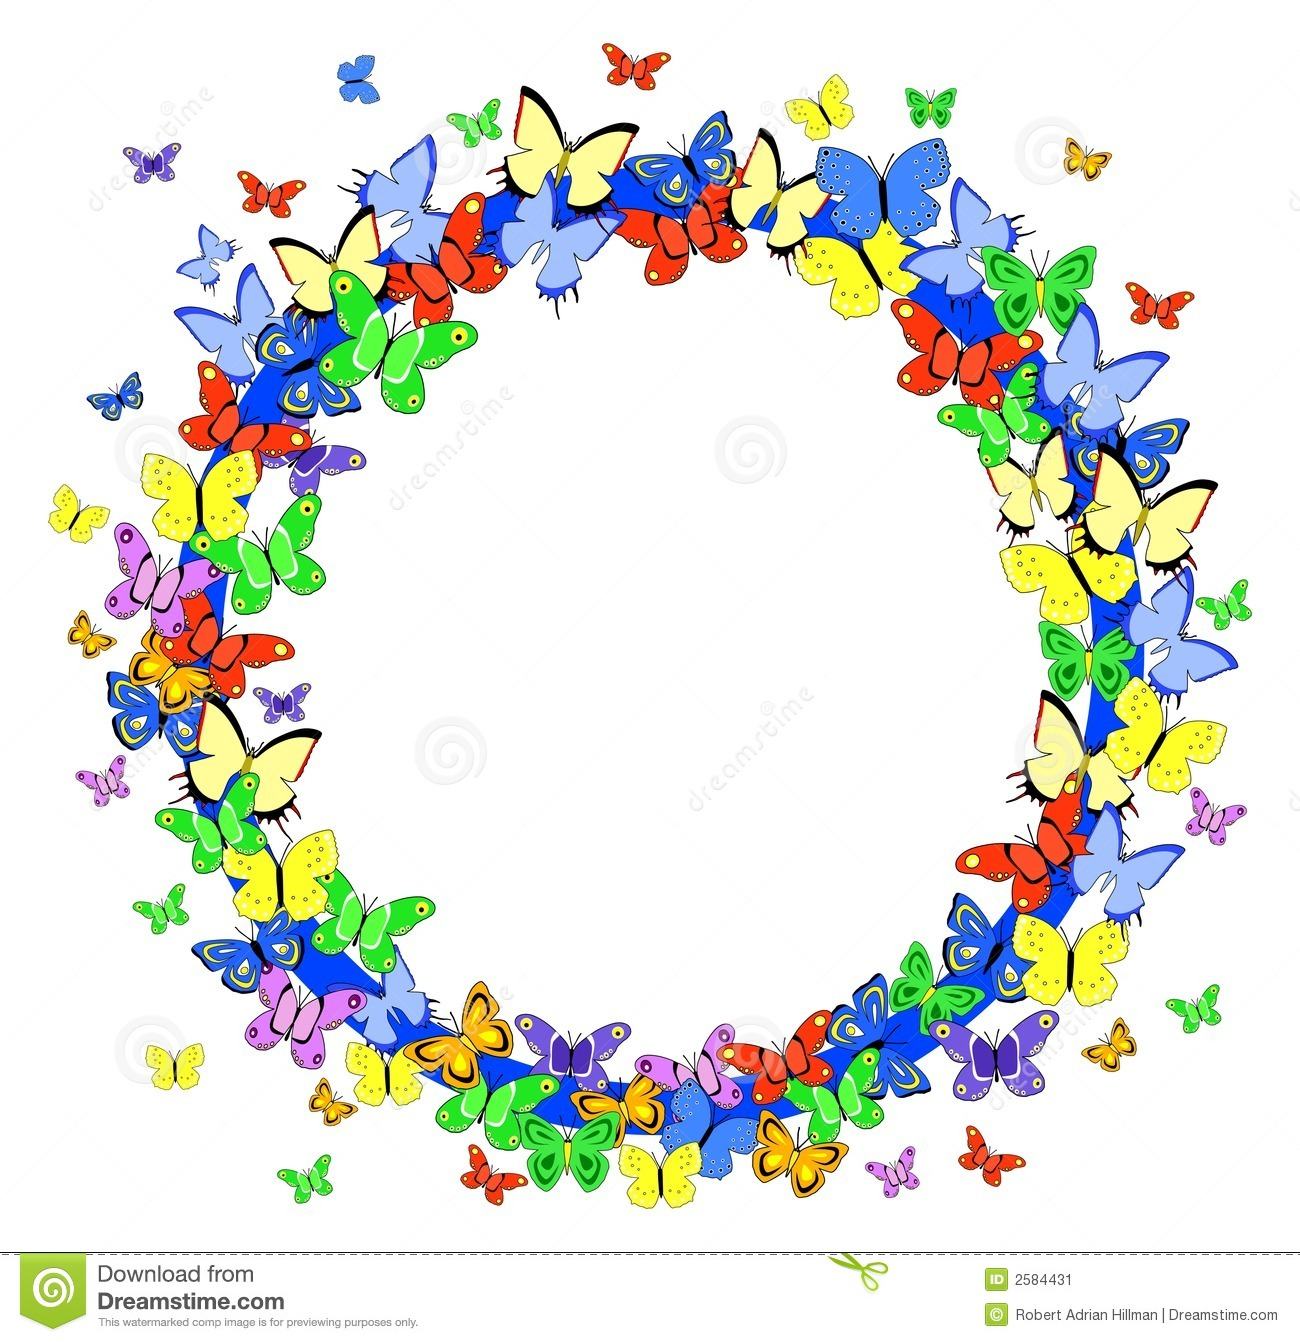 Flower and butterfly border clip art - photo#16